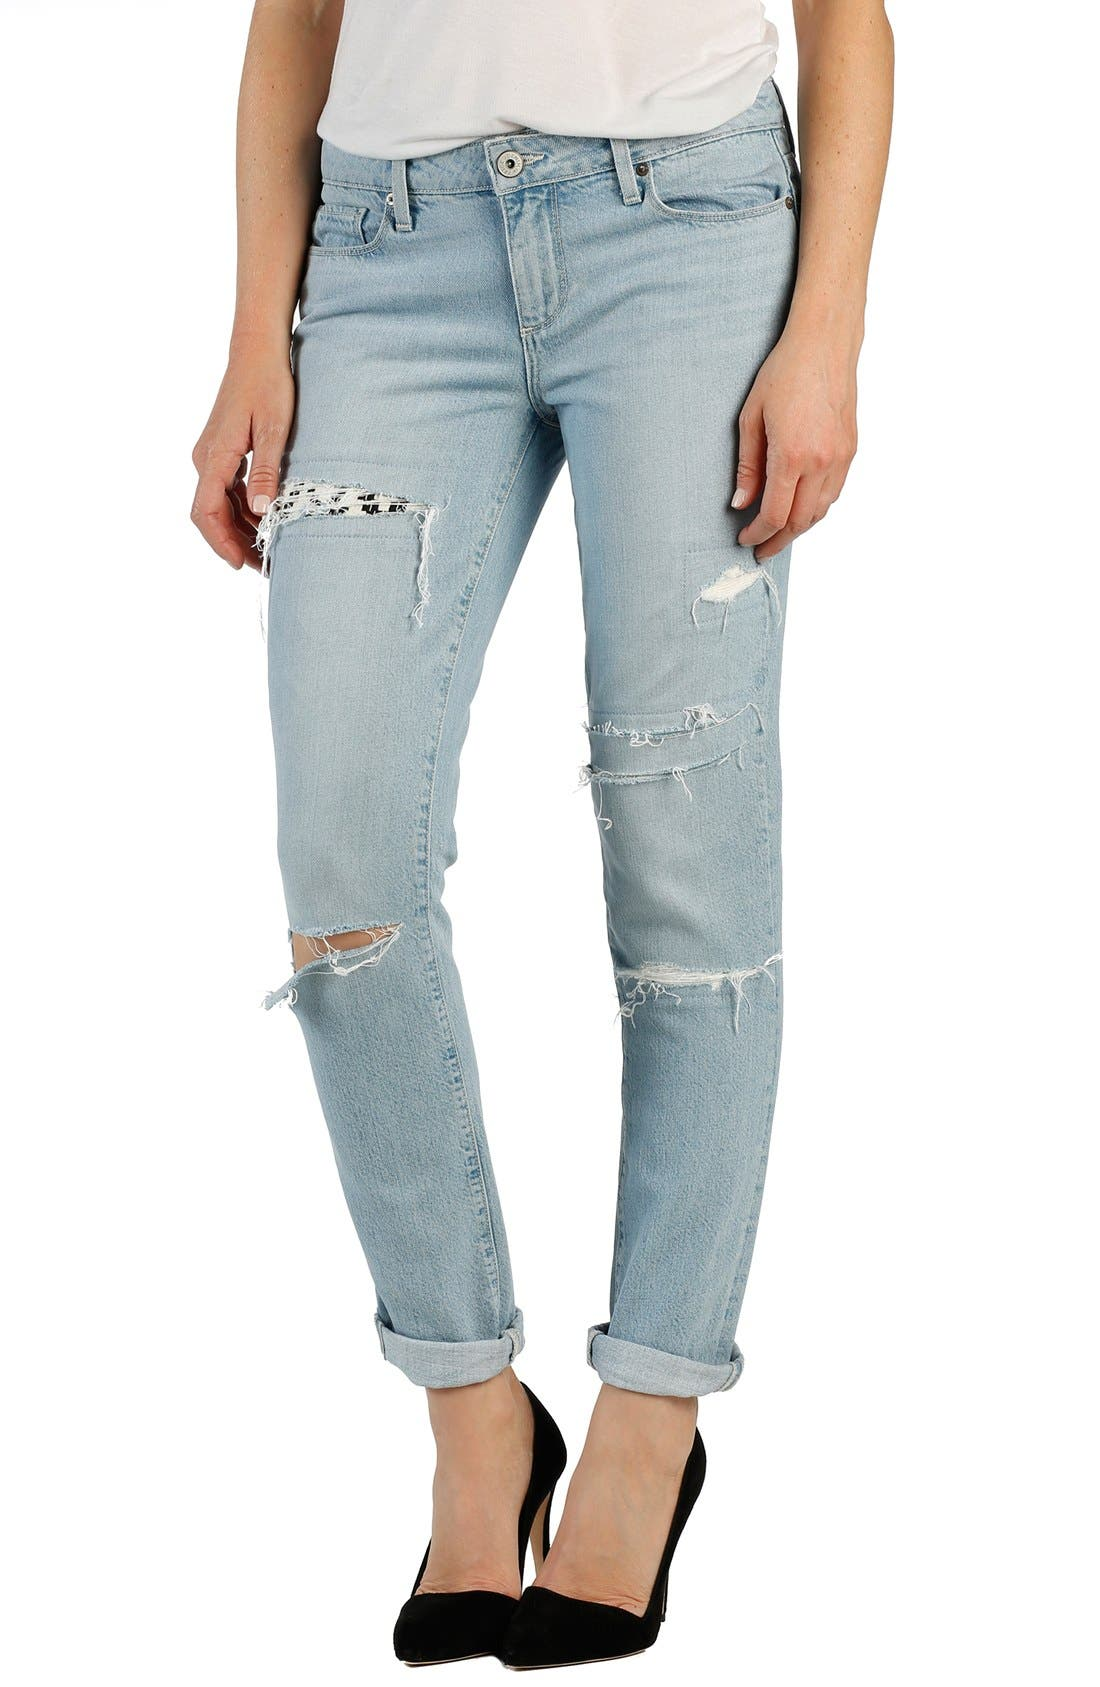 Main Image - Paige Denim 'Jimmy Jimmy' Ripped & Repaired Boyfriend Jeans (Mayan Patch)